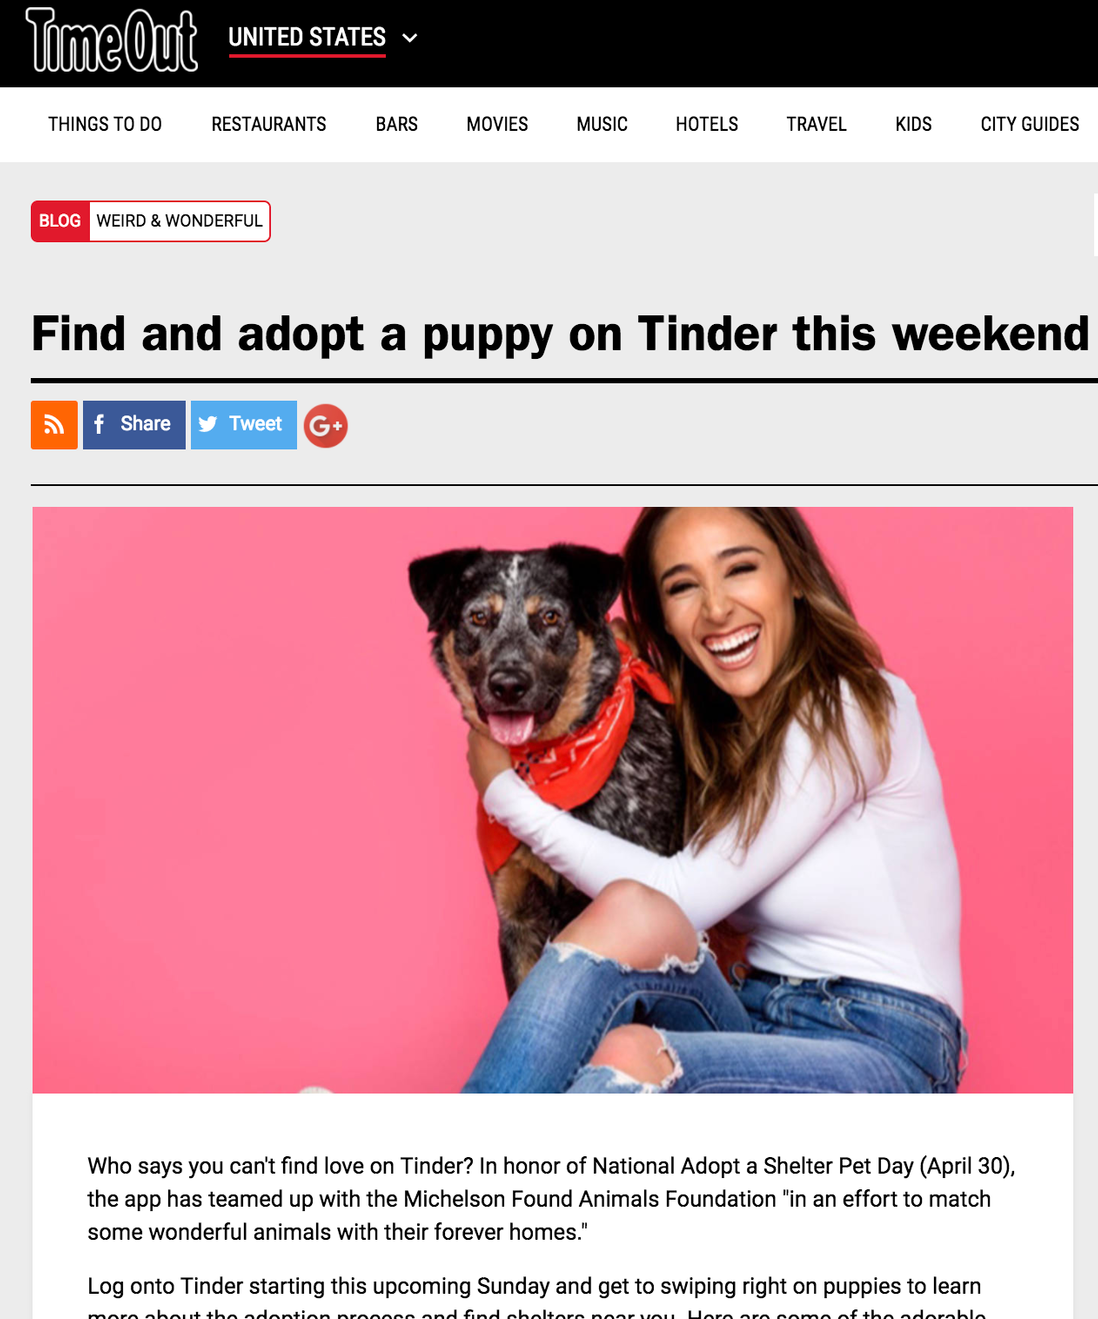 Timeout - Adopt a Puppy on Tinder-Influencer Collaboration